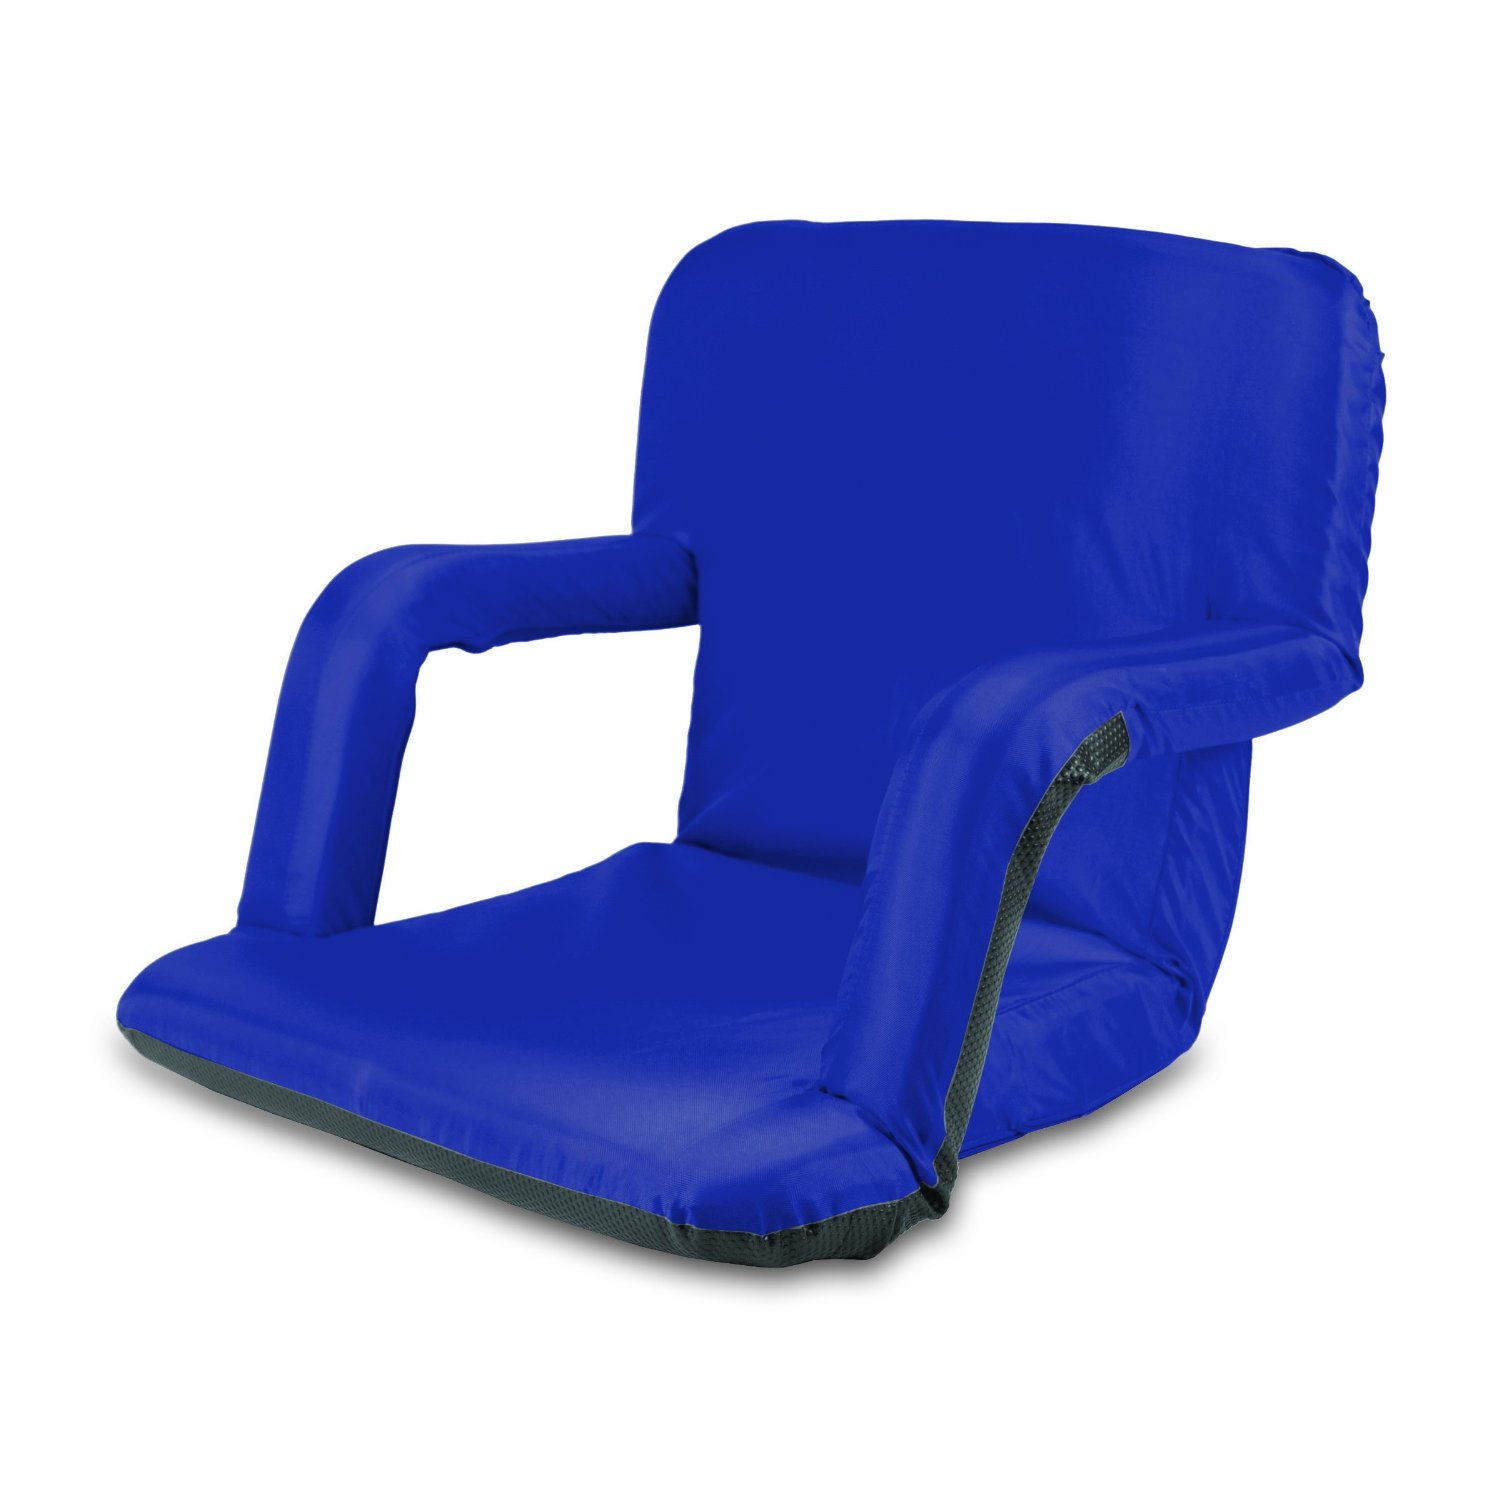 Plain and Simple Deals no frills just deals Stadium Seats